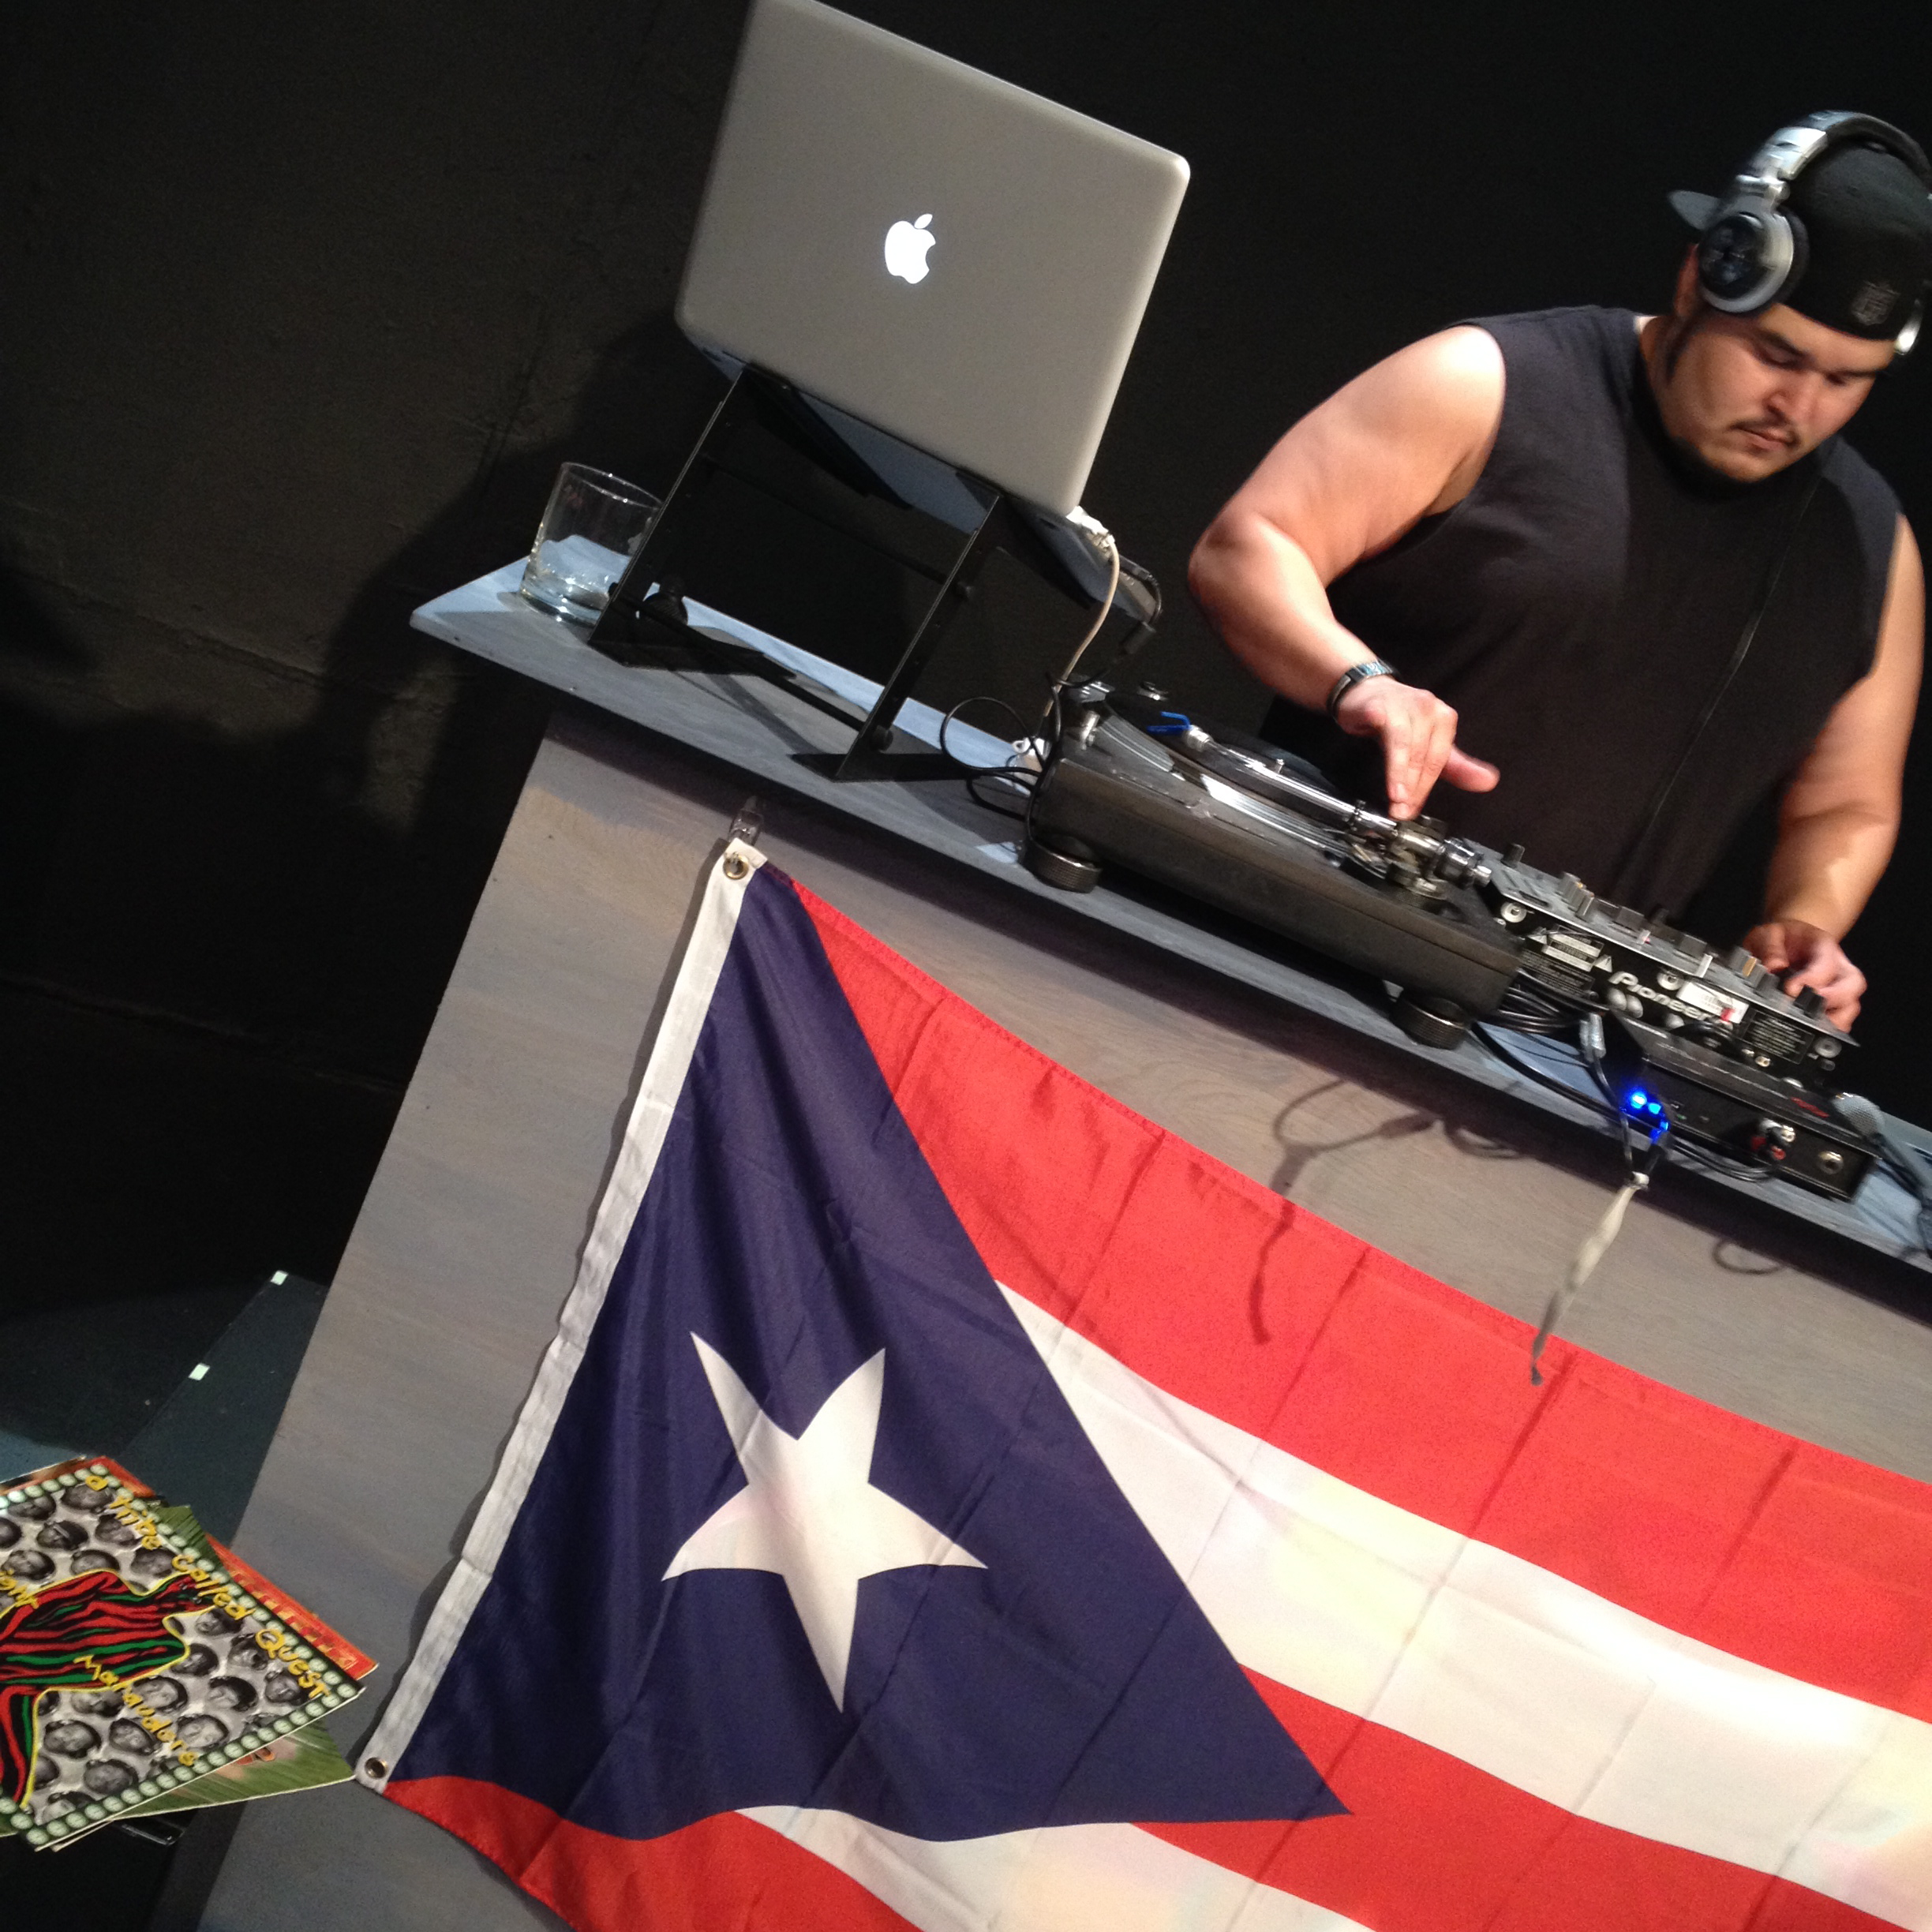 BEHIND THE SCENES! - Actor Isacc Torres sound checks live DJ equipment pre-show, and practices for a scene